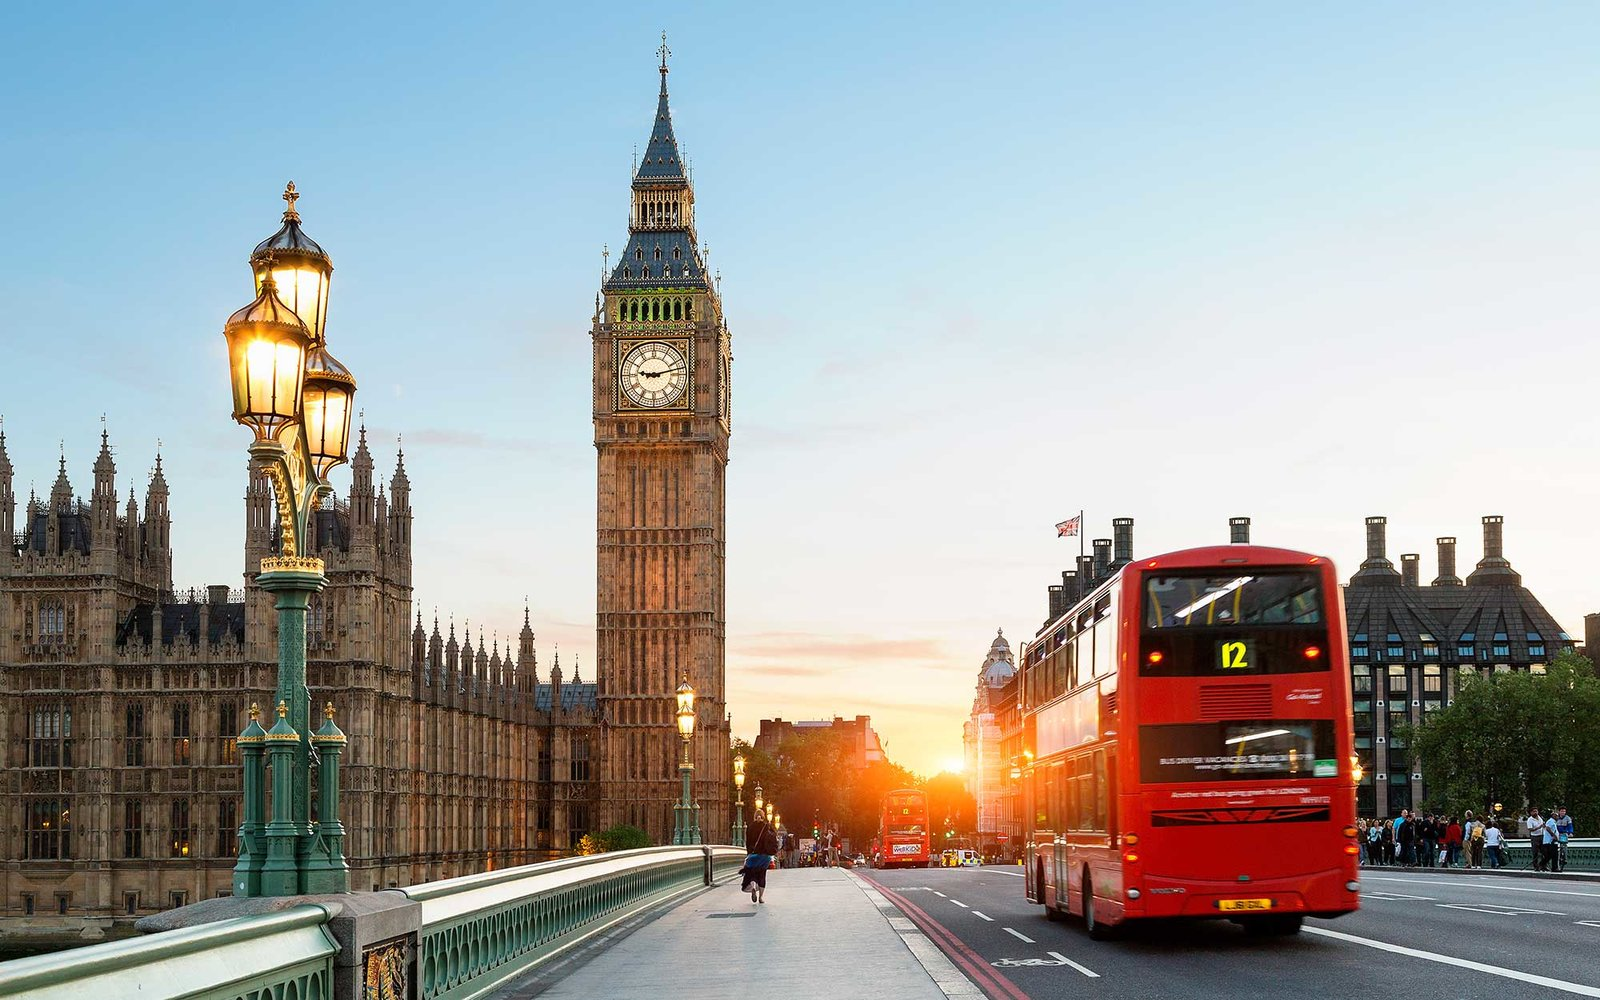 Corsi d'inglese a Londra